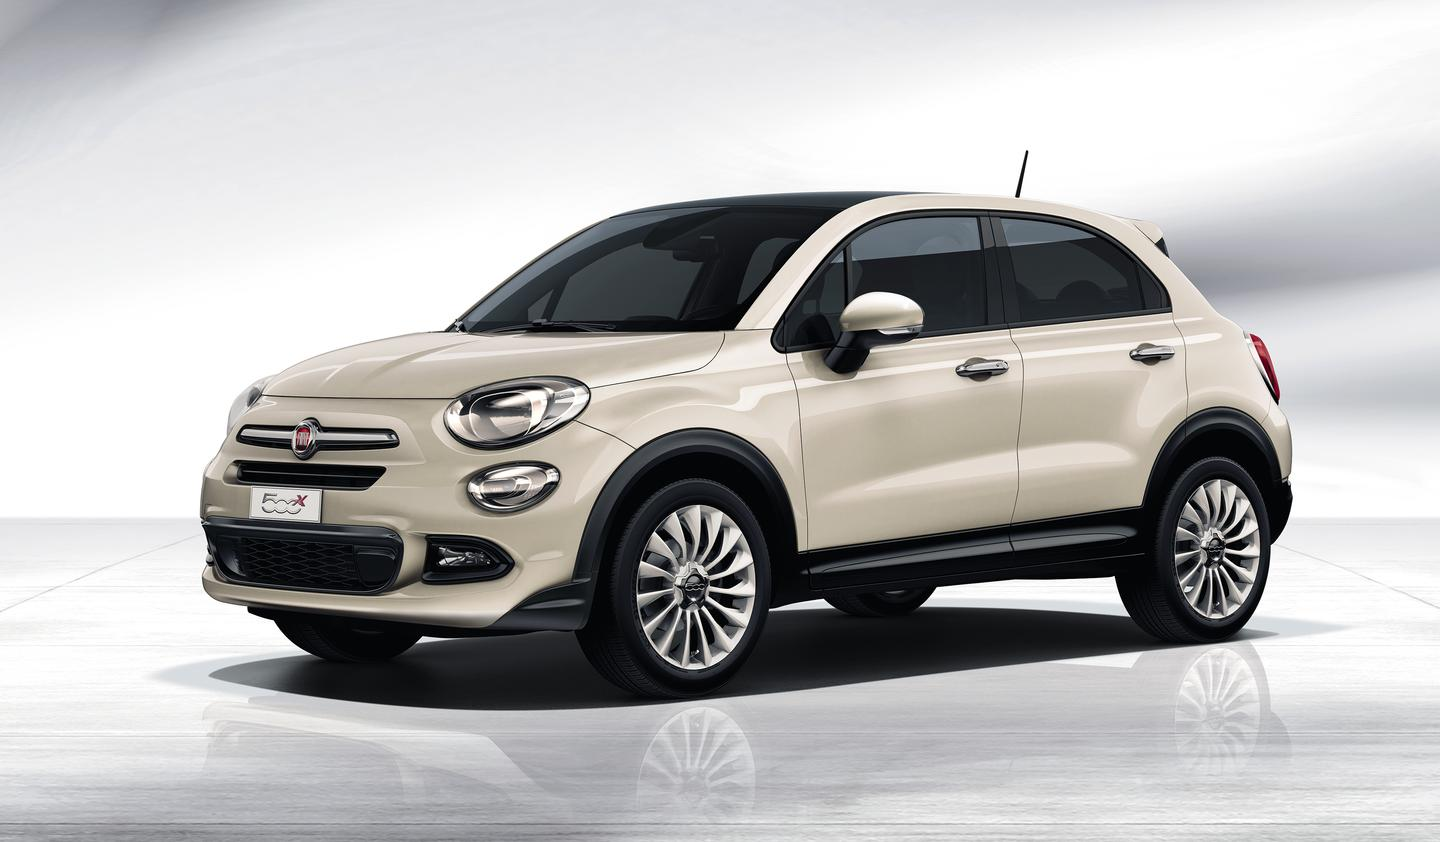 The Fiat 500X comes in a choice of 12 liveries